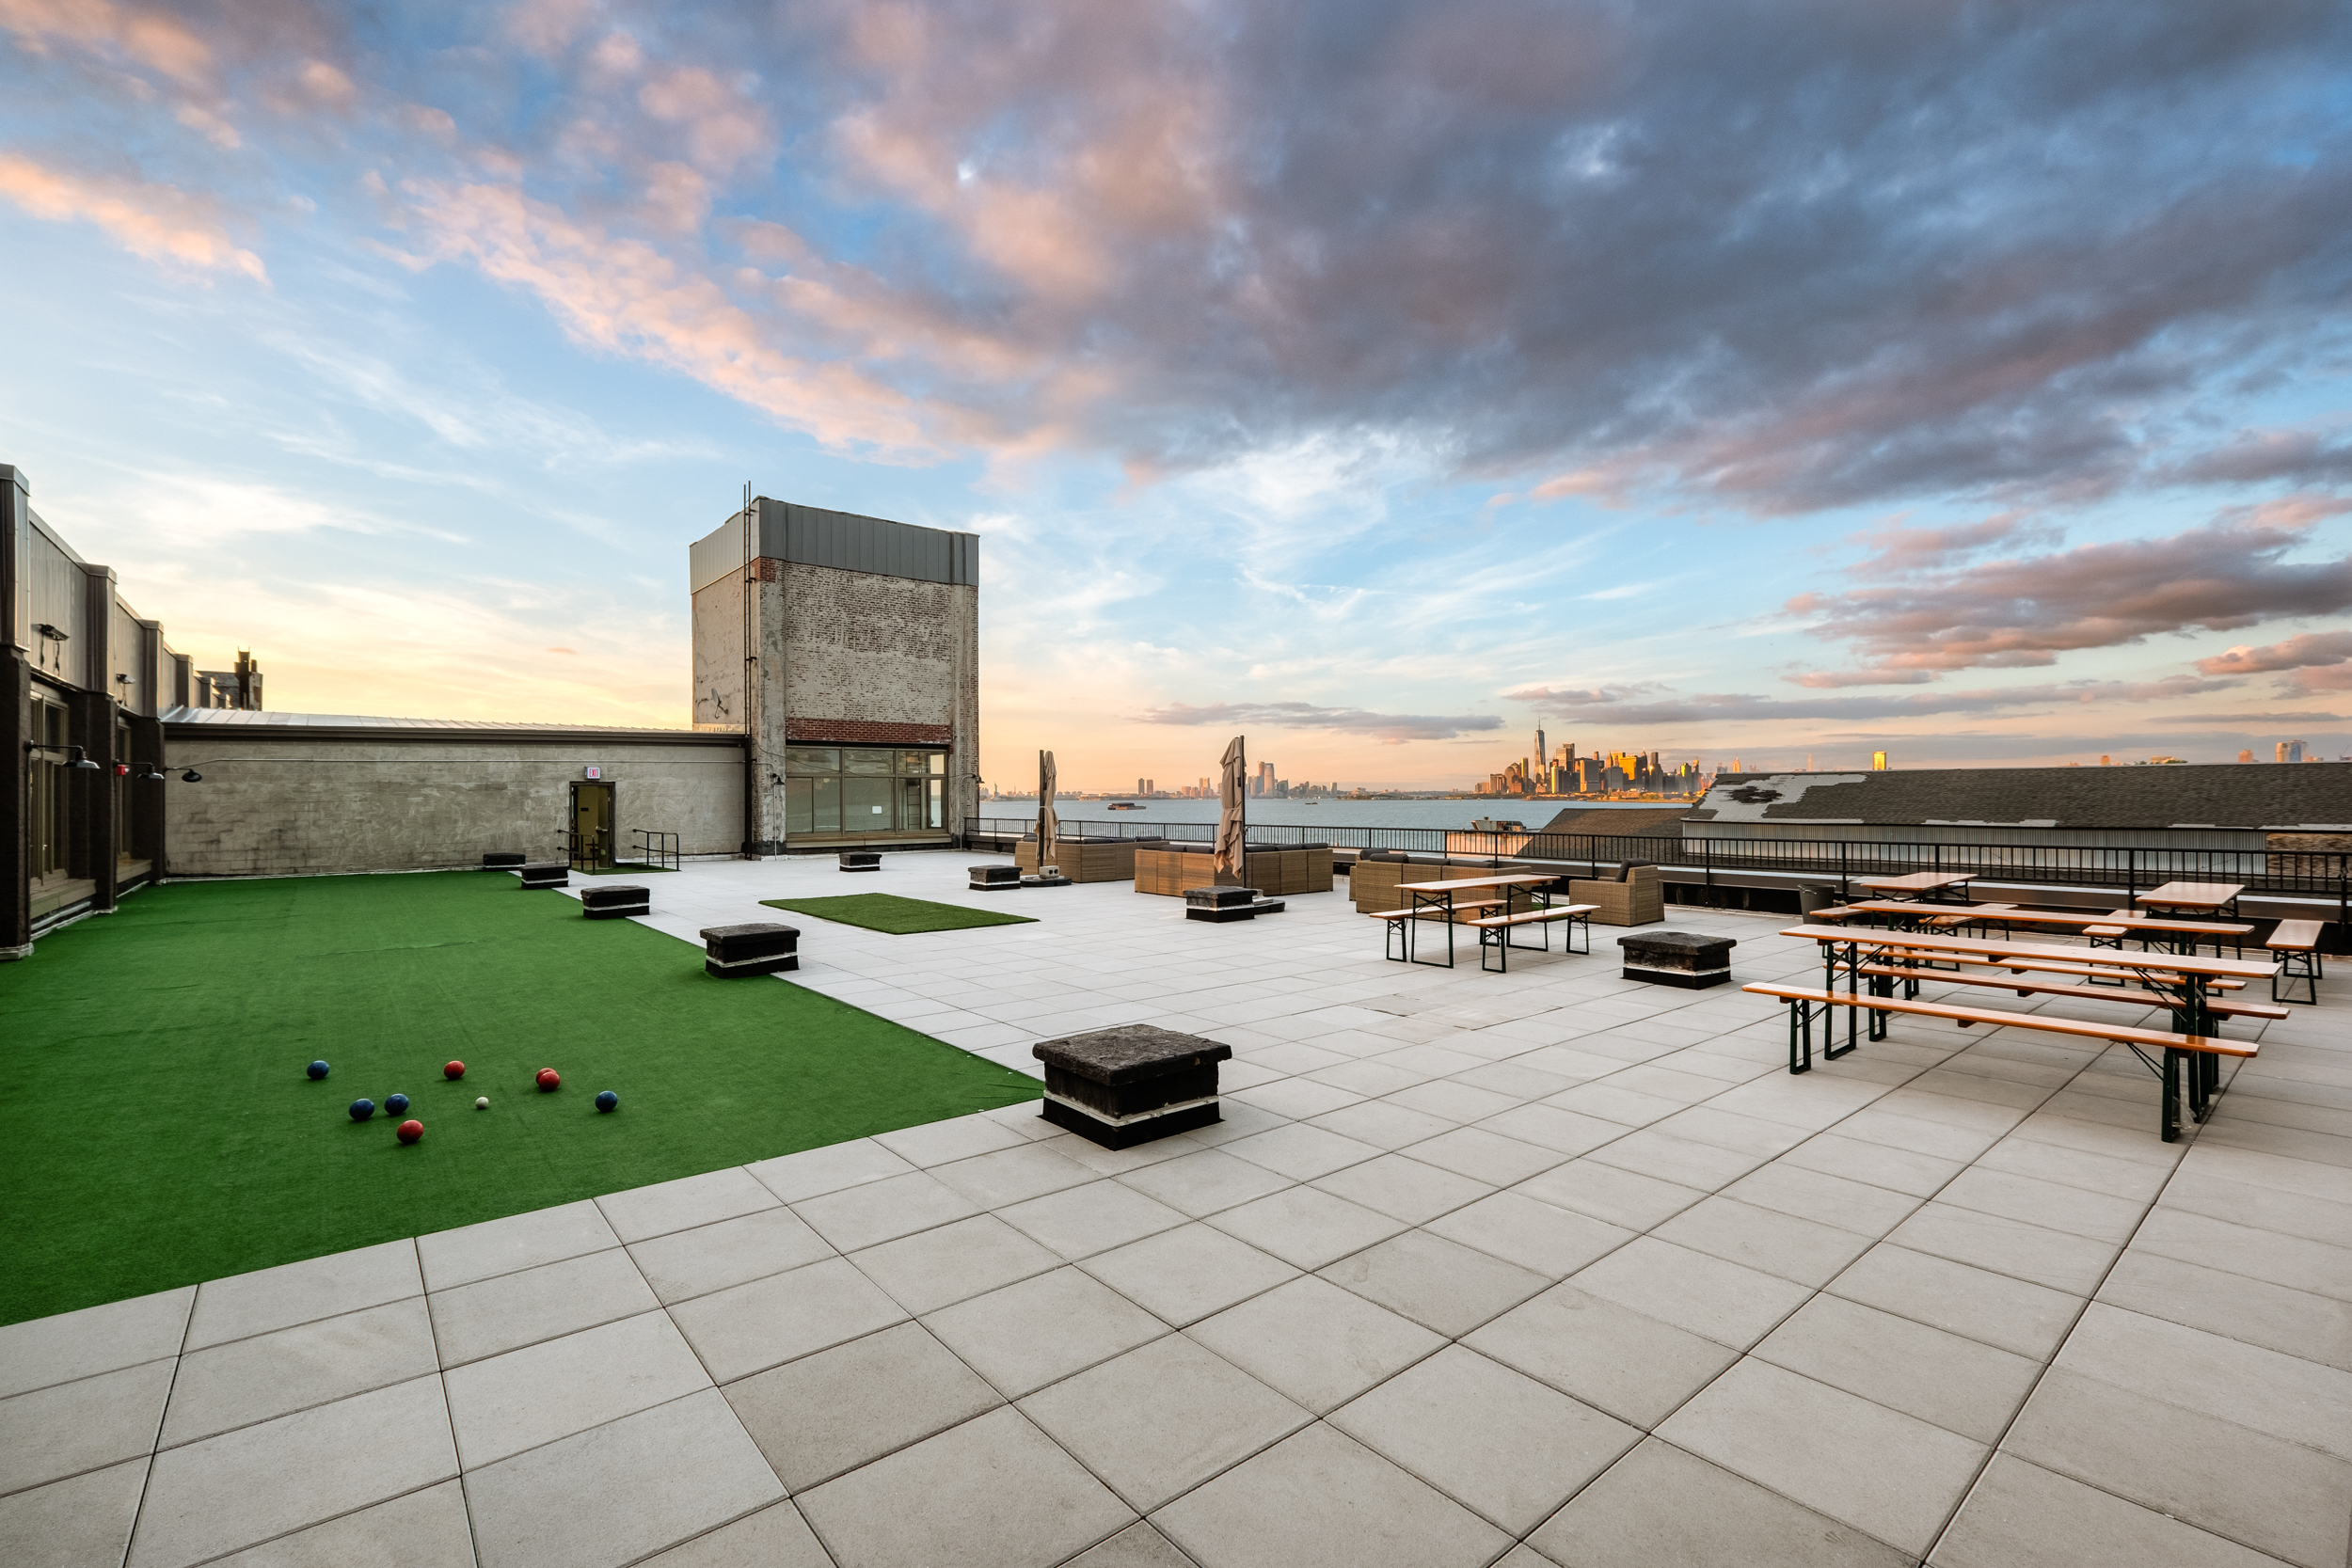 Sunset Park Rooftop event space in New York City, NYC, NY/NJ Area